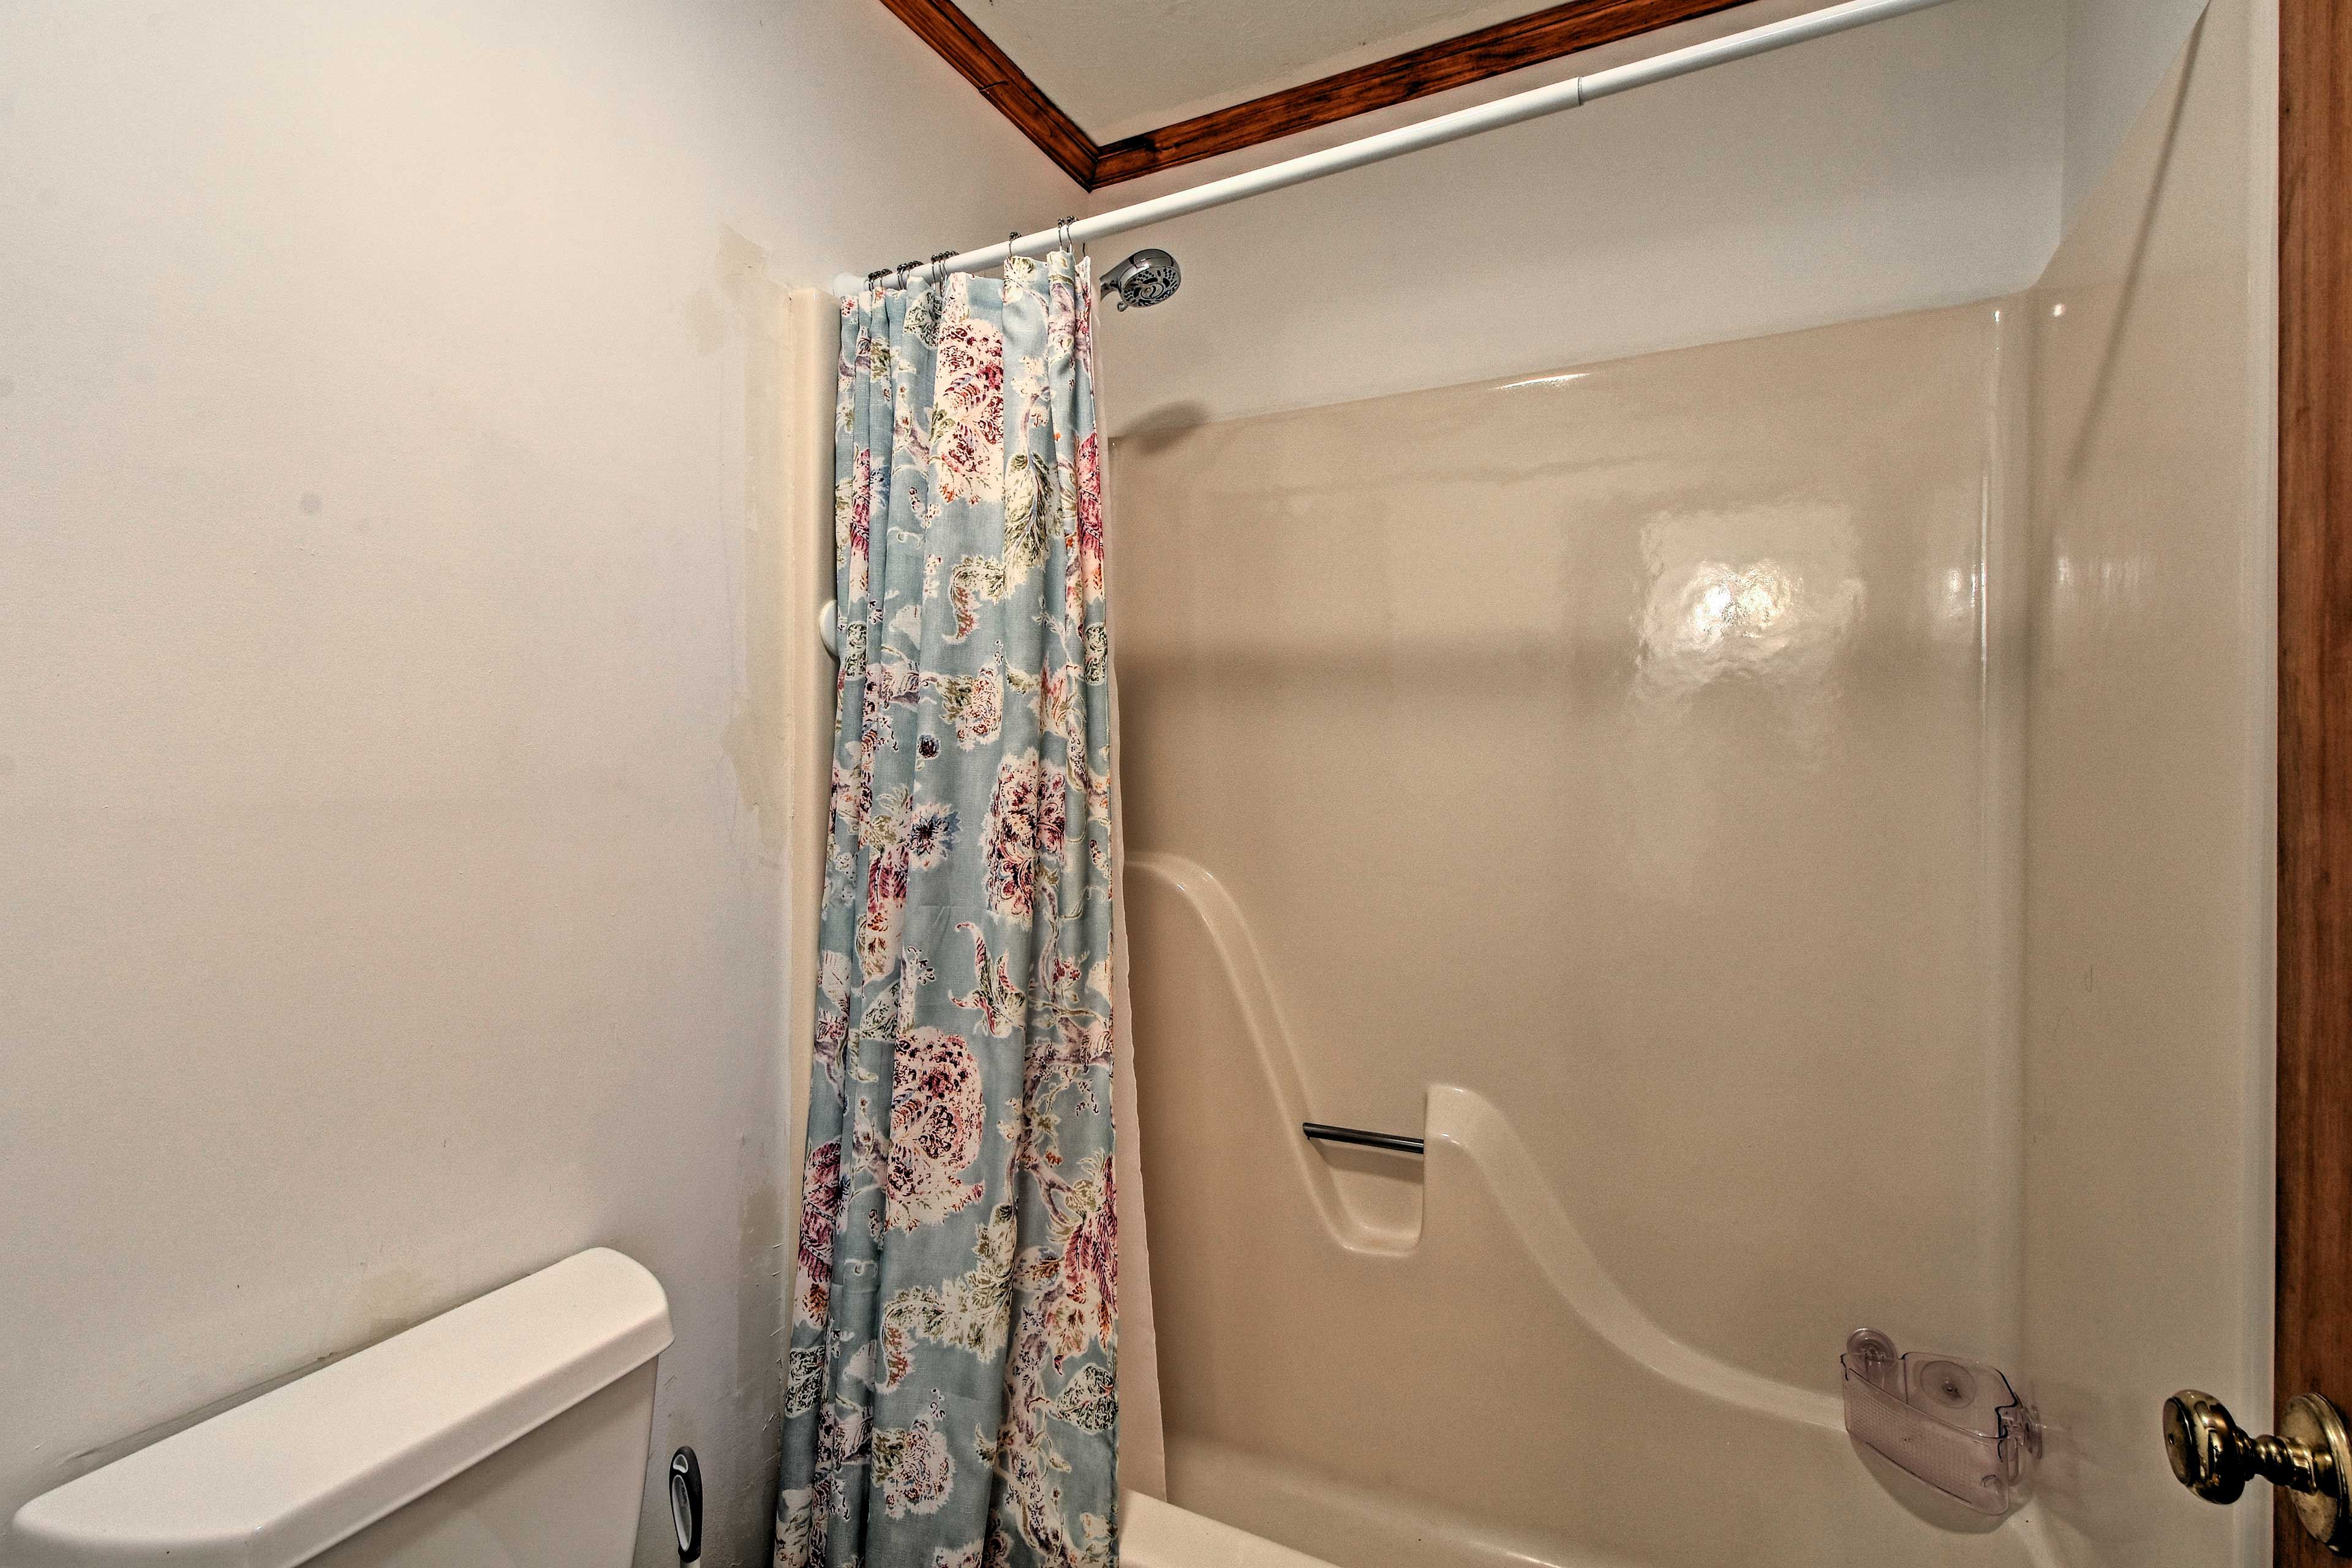 This shower/tub combo is shared between the 2 upstairs bedrooms.